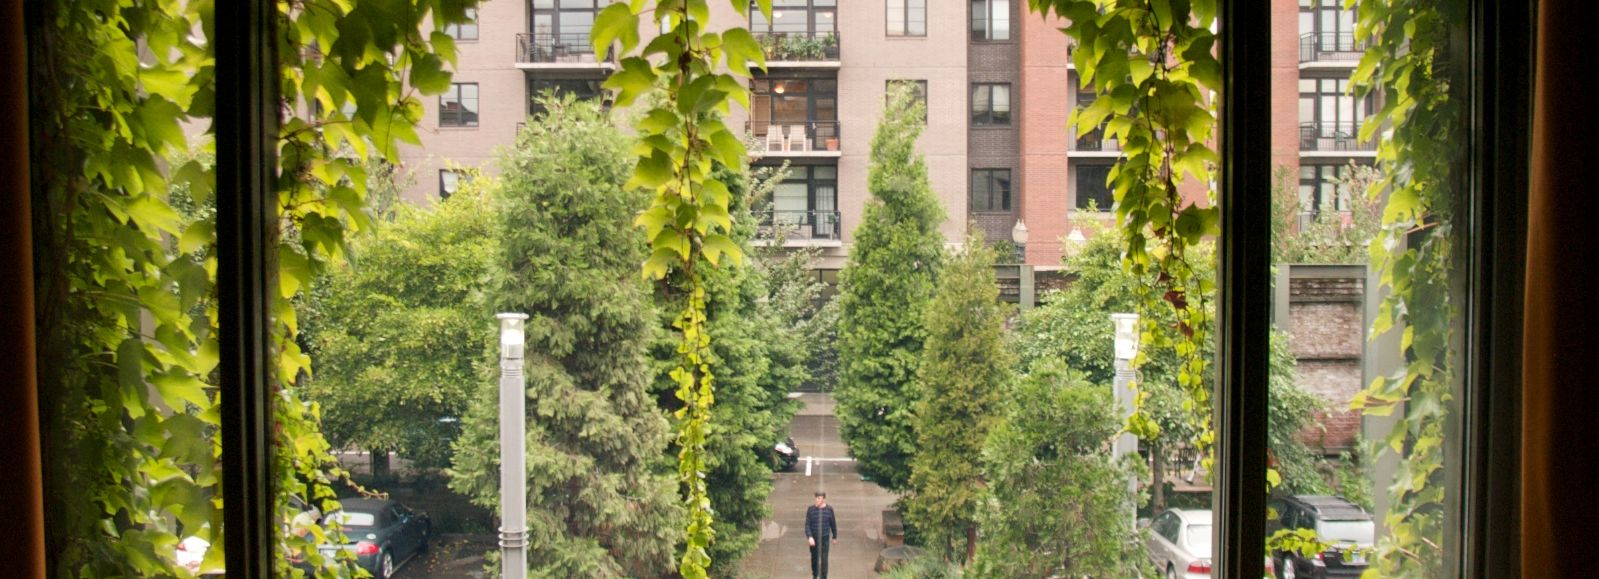 Looking out the window, lots of greenery in the city, Ecotrust building